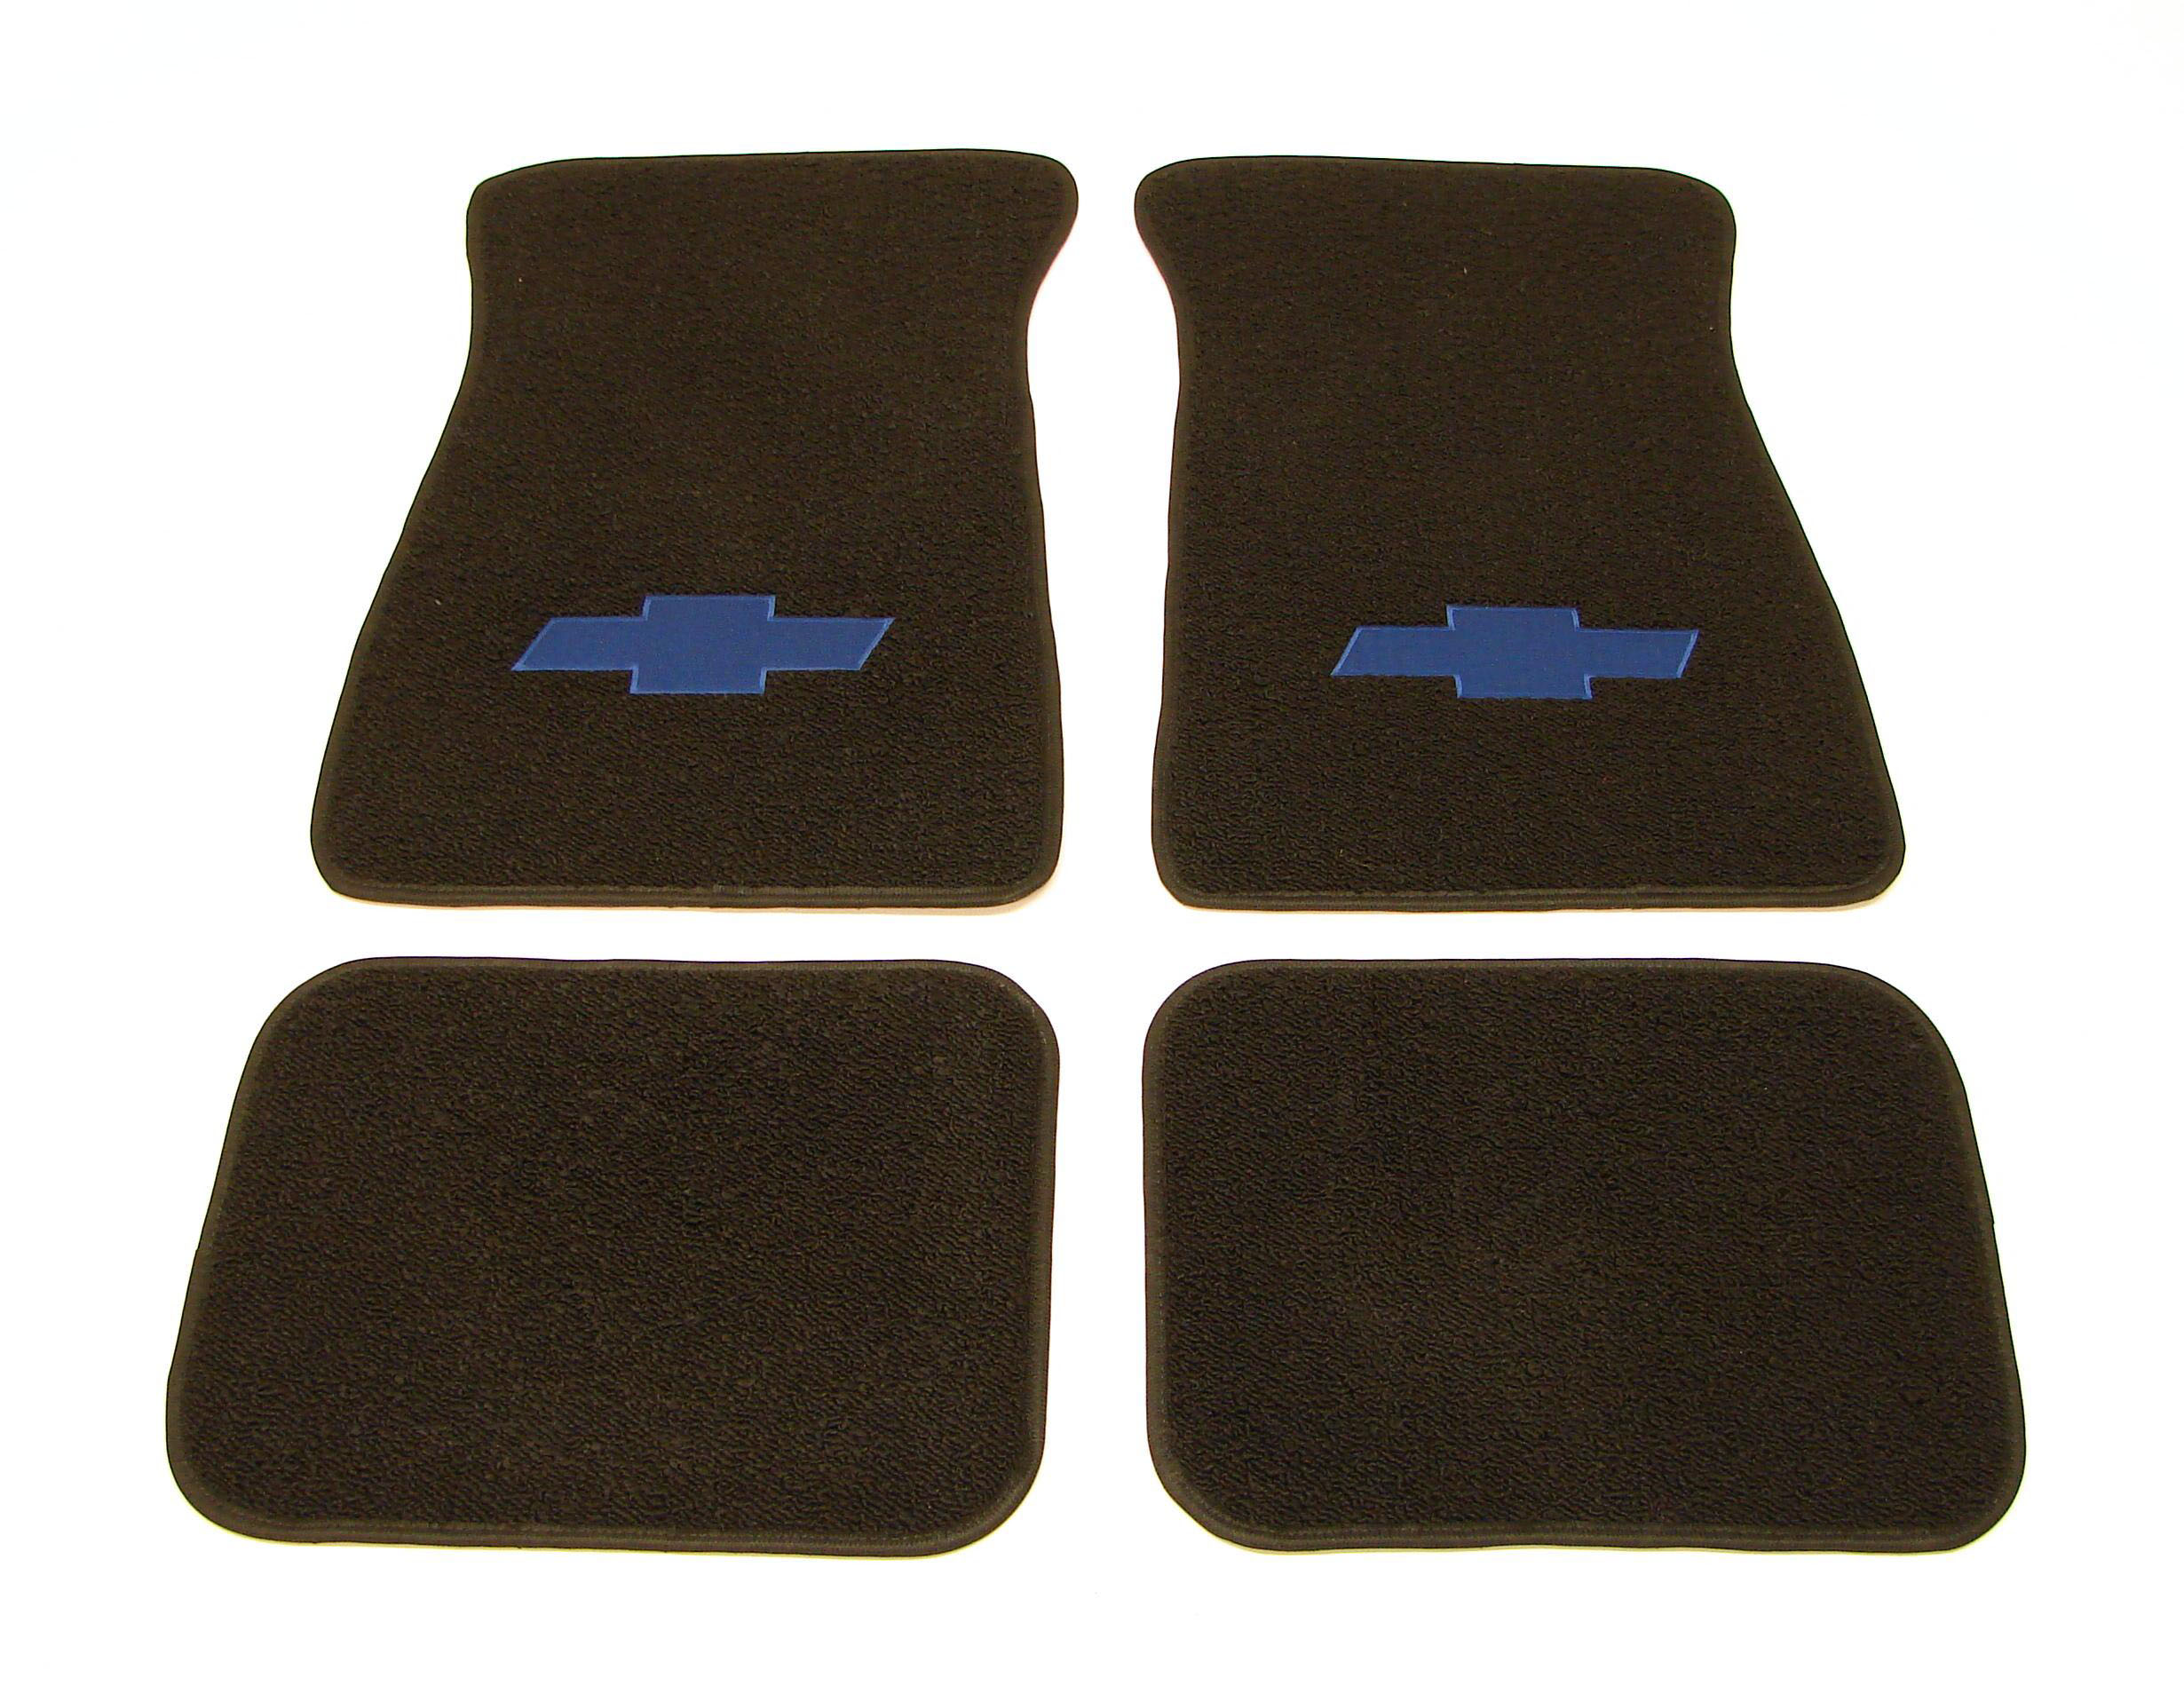 1967 1968 1969 camaro floor mats black w blue bow tie